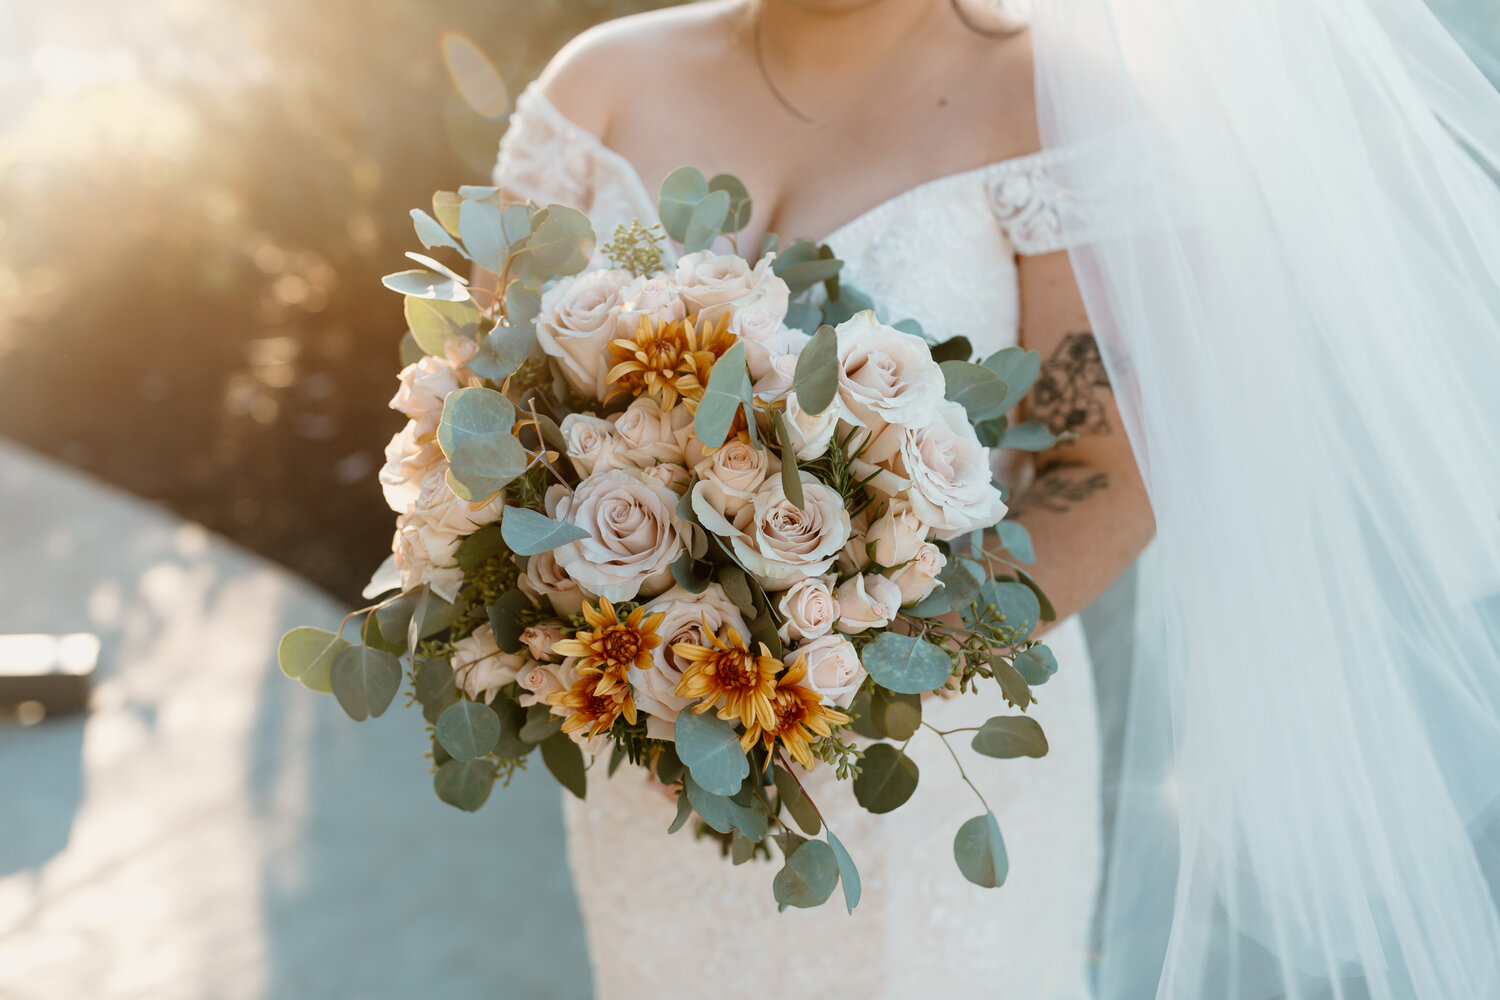 The Flowerman is a great choice for beautiful bouquets!